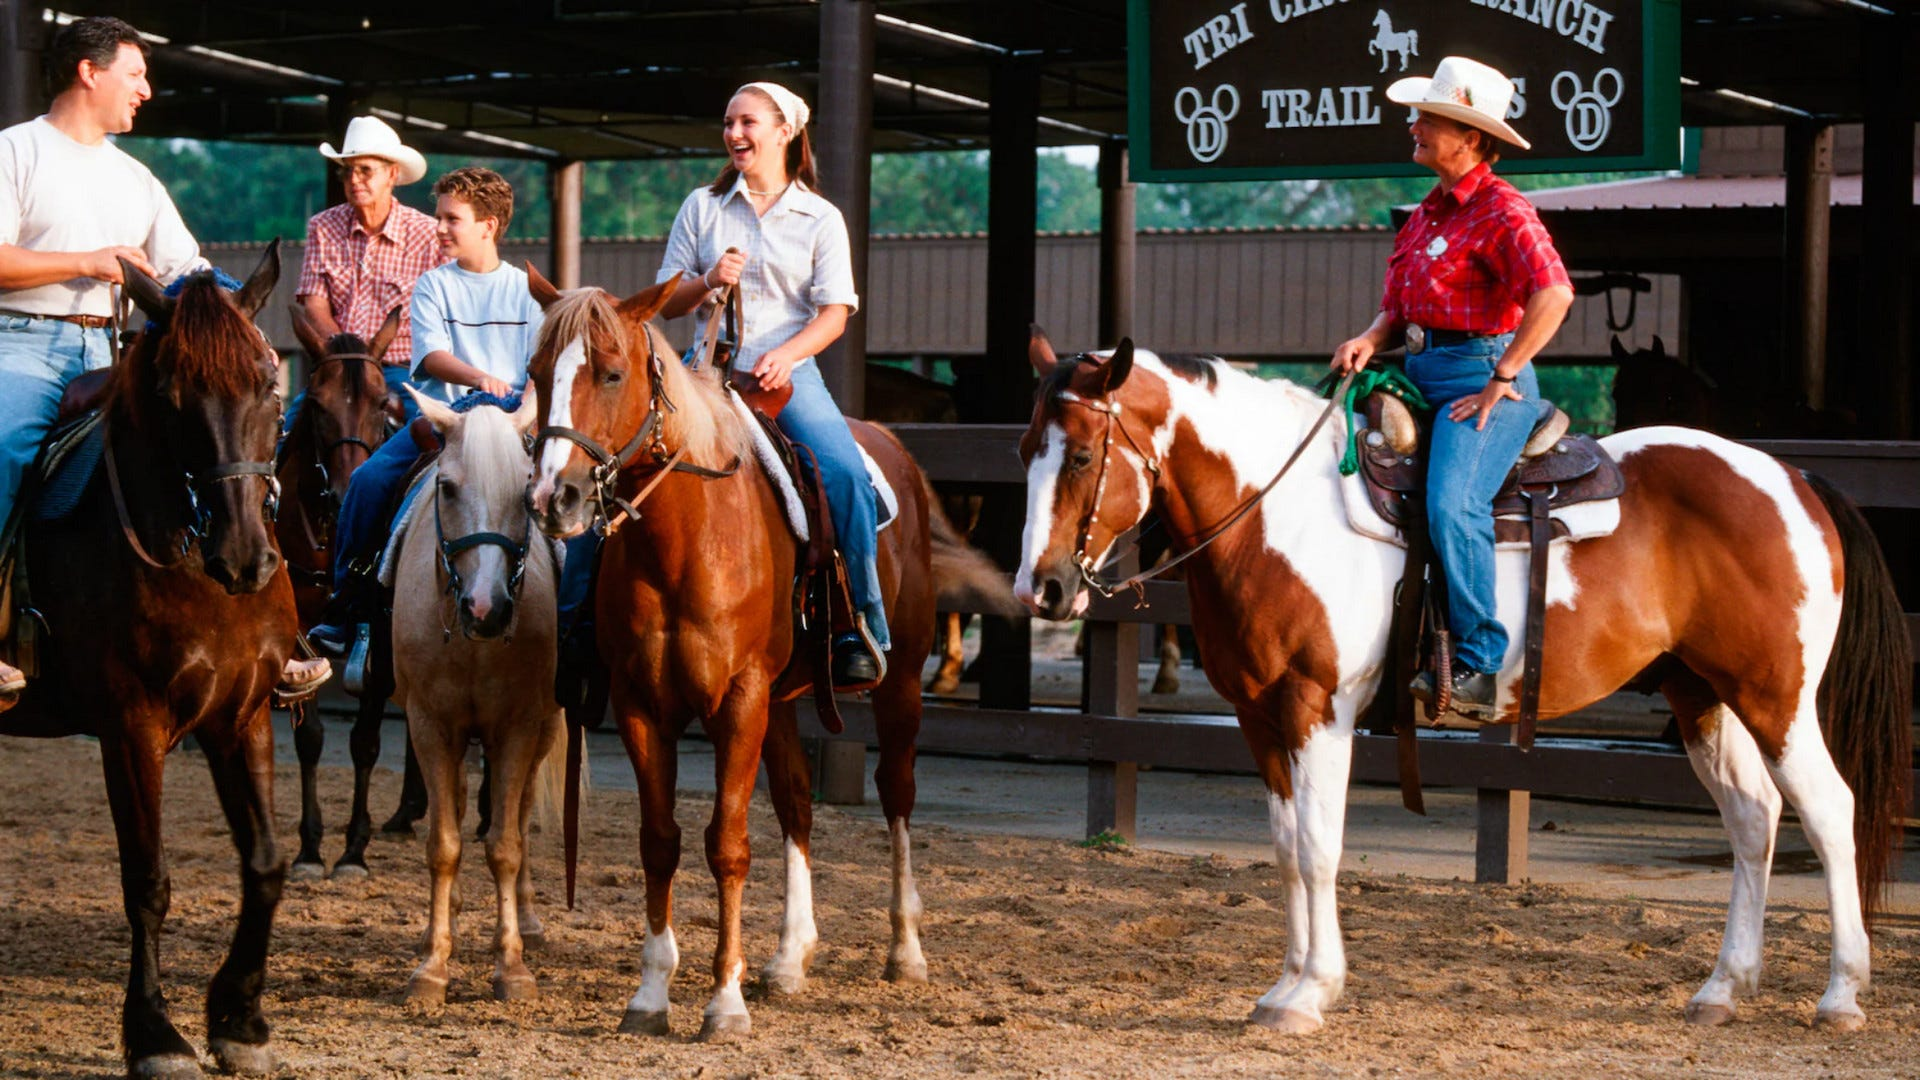 A cast member and family saddle up to ride at the Tri-Circle D Ranch at Disney World.